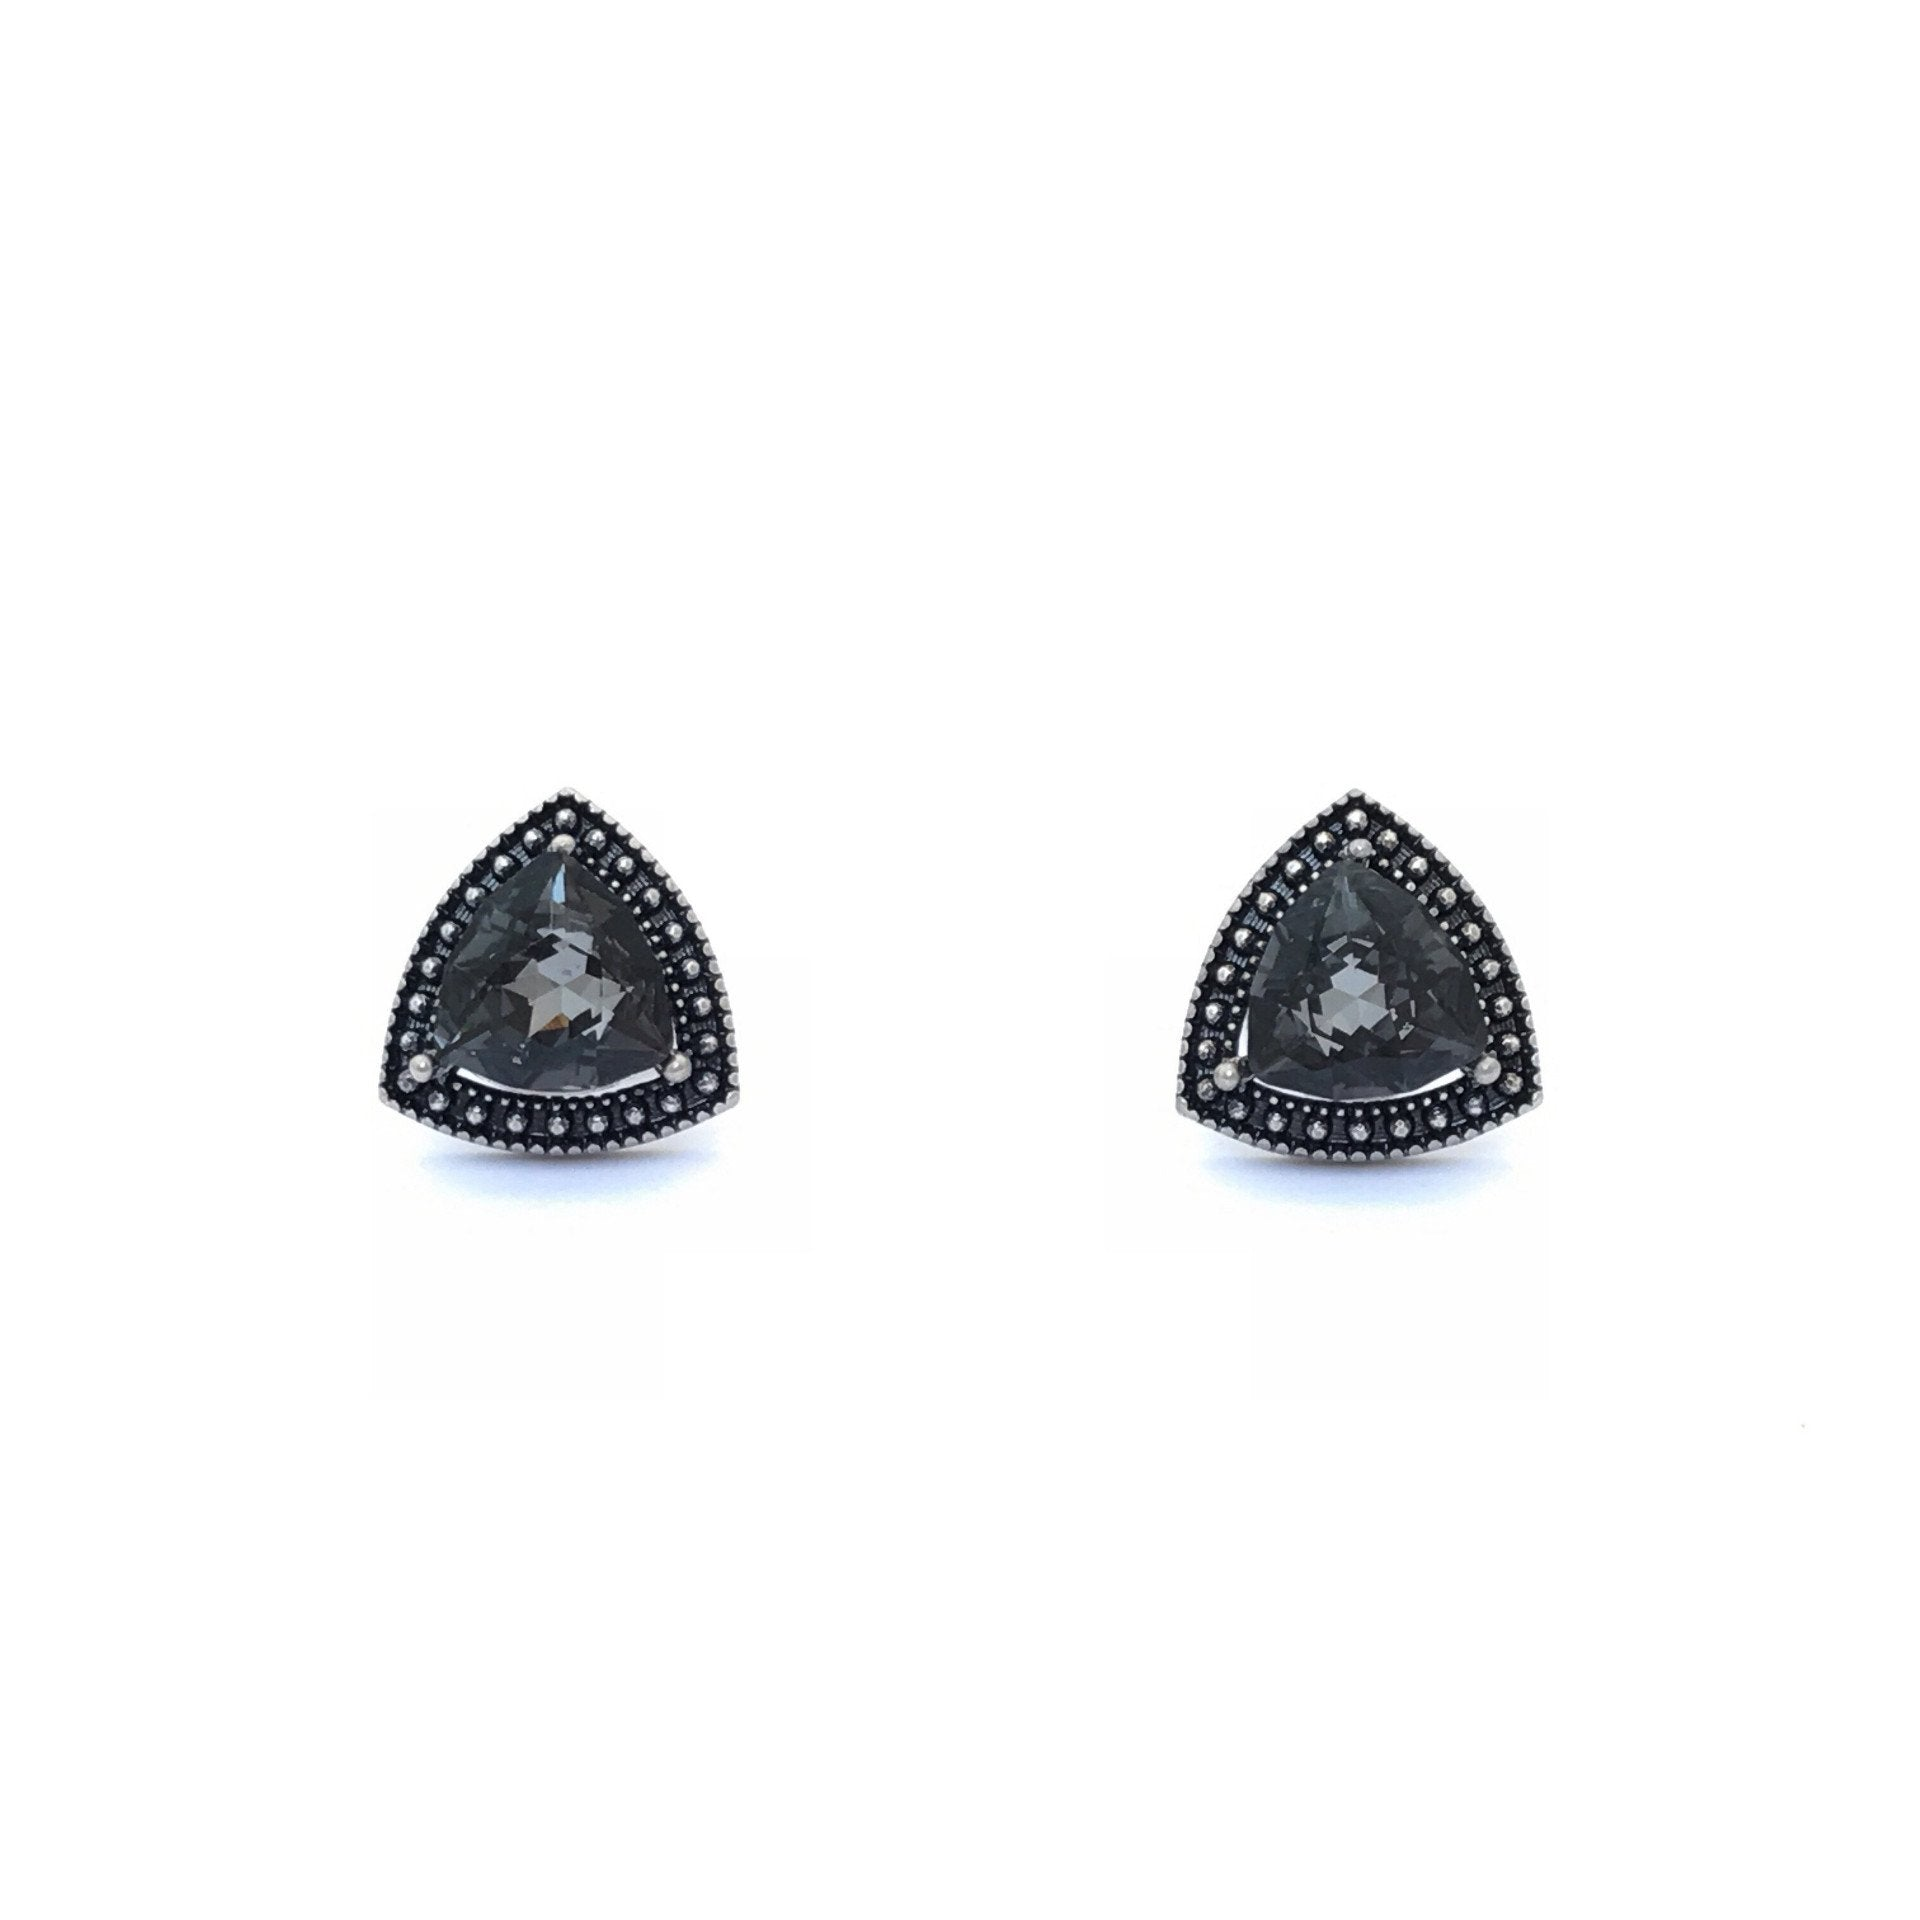 cc piercing earrings chanel crystal ruthenium black stud rare